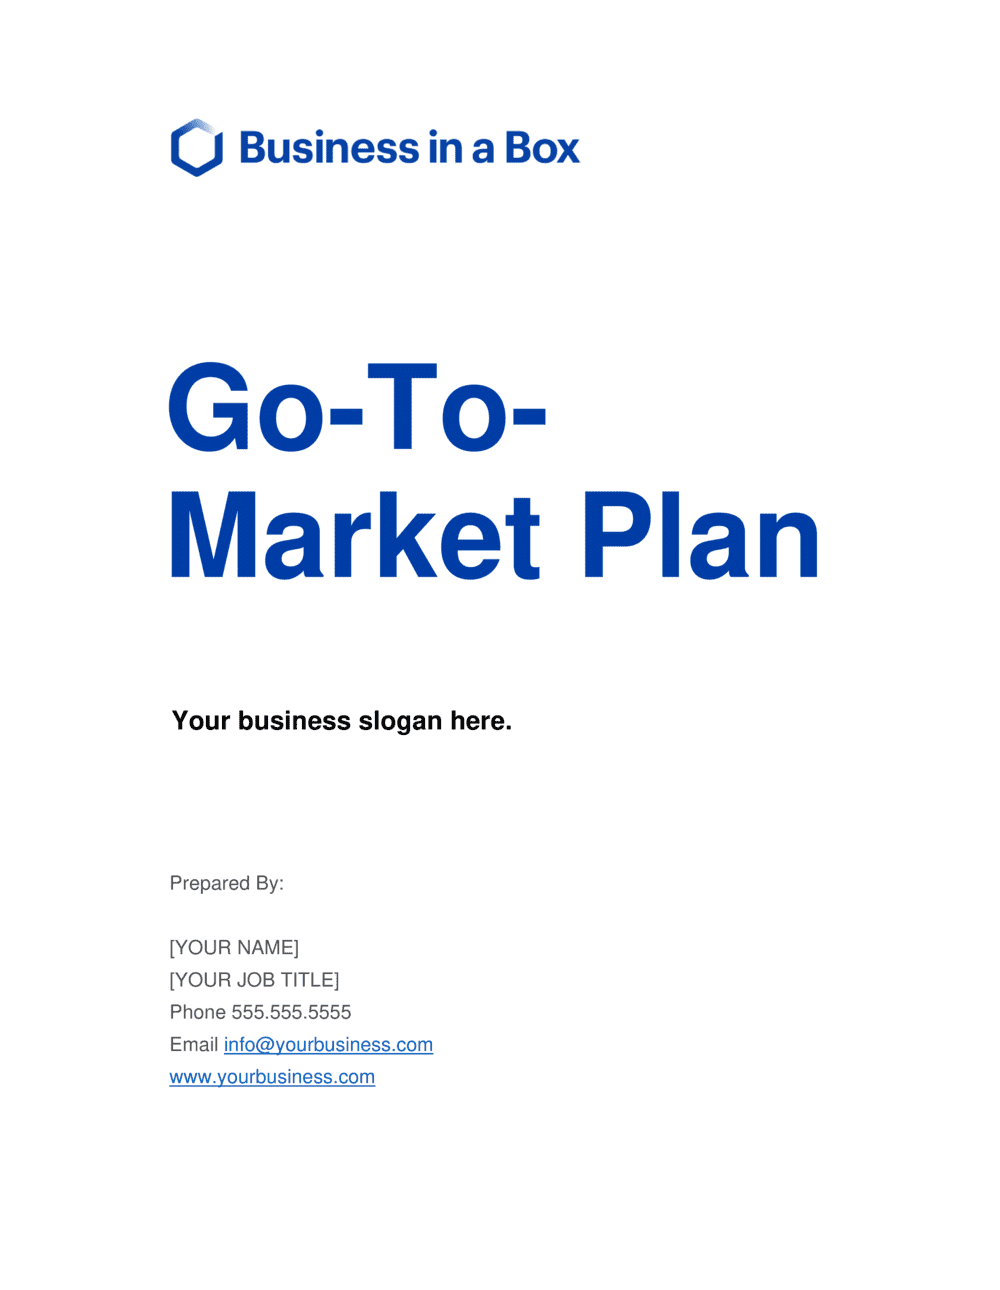 Business-in-a-Box's Go To Market Plan Template